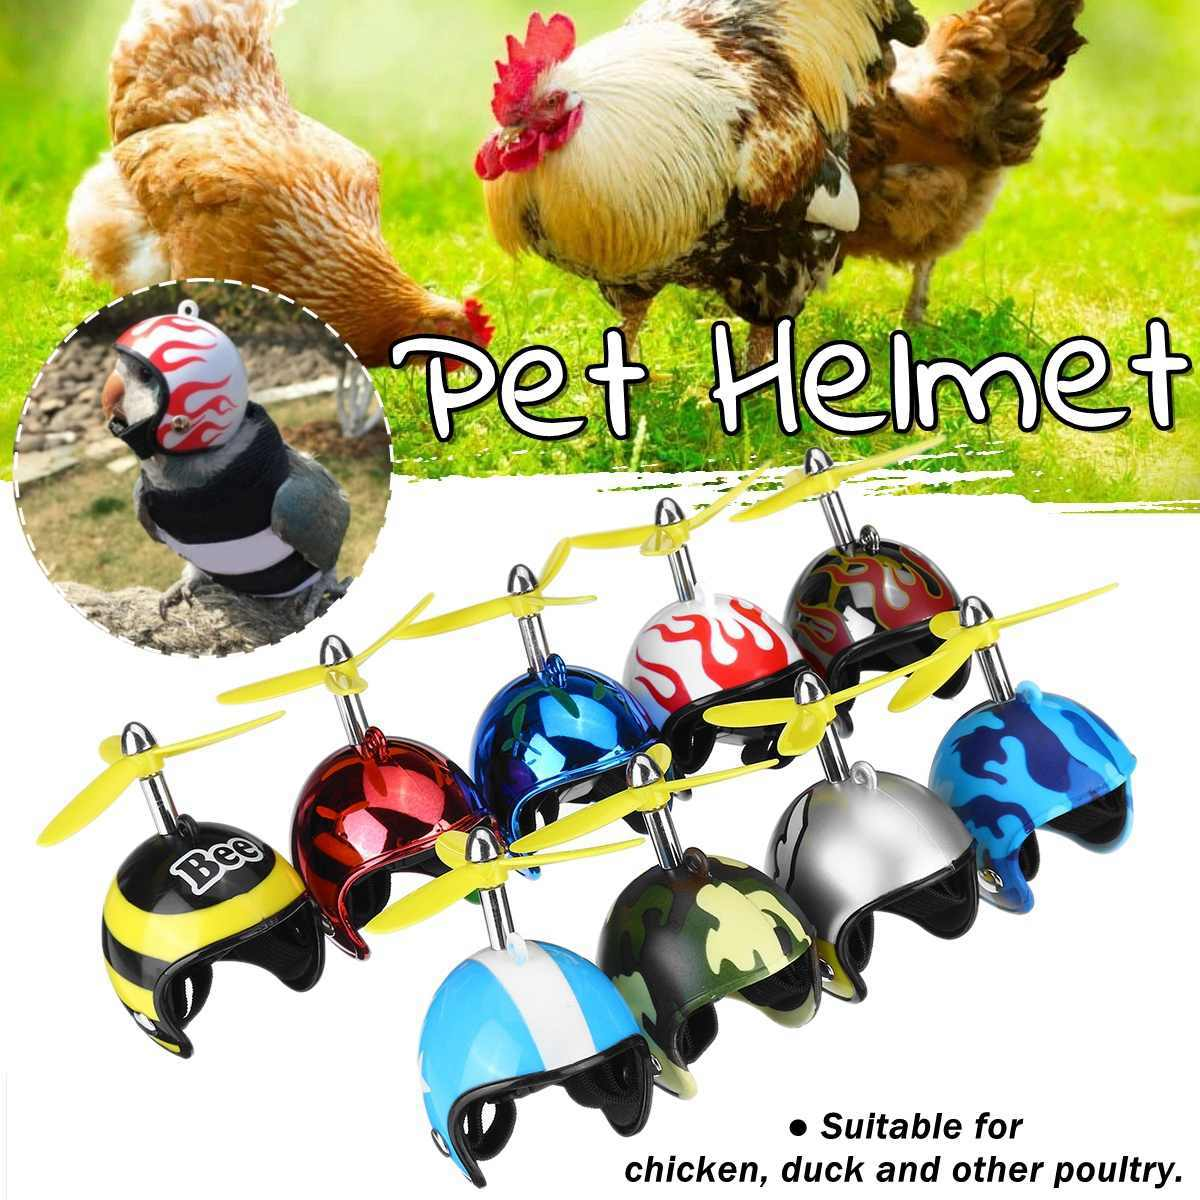 Chicken Bird Toy Head Protection Helmet Bird Hat Headwear Suitable for Parrot Small Chickens brown Ducks and Other Poultry Funny Pet Fuyamp Chicken Helmet